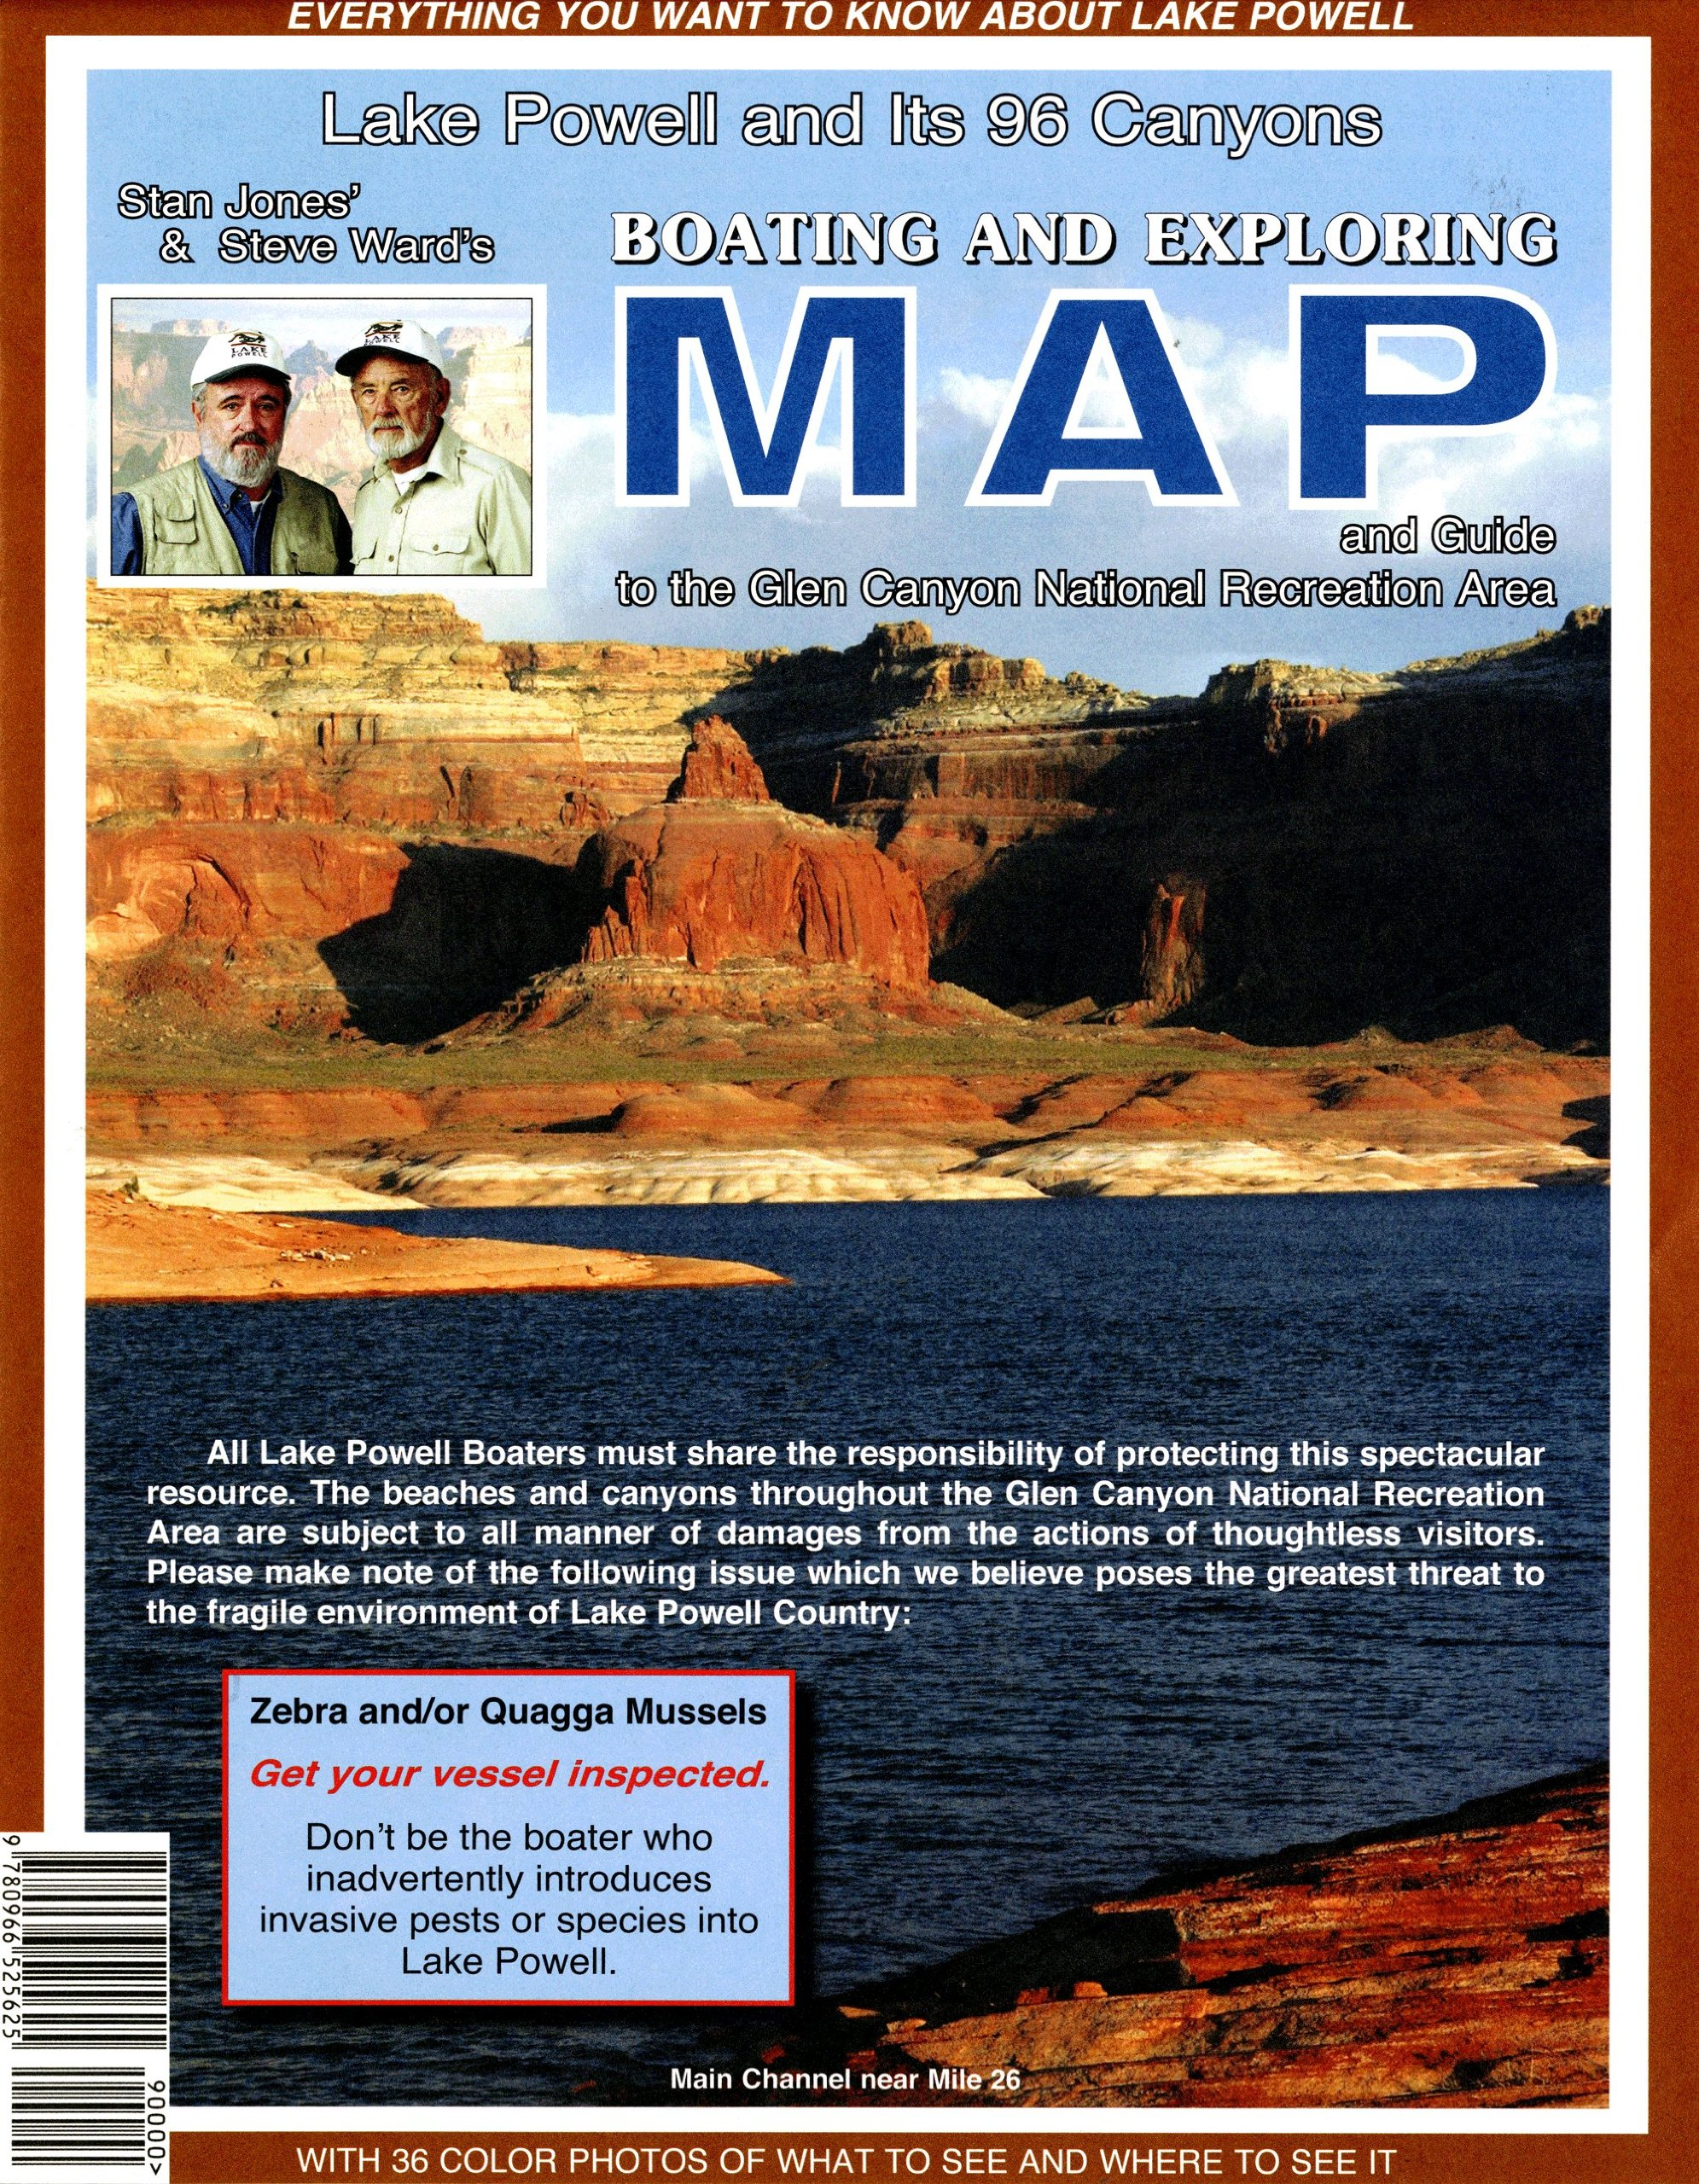 Lake Powell and Its 96 Canyons Boating and Exploring Map ... on map of russia and neighboring countries, map of afghanistan and surrounding countries, map of chernobyl, map of st. moritz, map of san francisco, map of rothenburg, map of stuttgart, map of europe and middle east, map of tyrol, map of switzerland, map of swiss alps, map of atlanta, map of asia, map of la chaux-de-fonds, map of world, map of cambridge, map of fribourg, map of winterthur, map of basel, map of geneva,